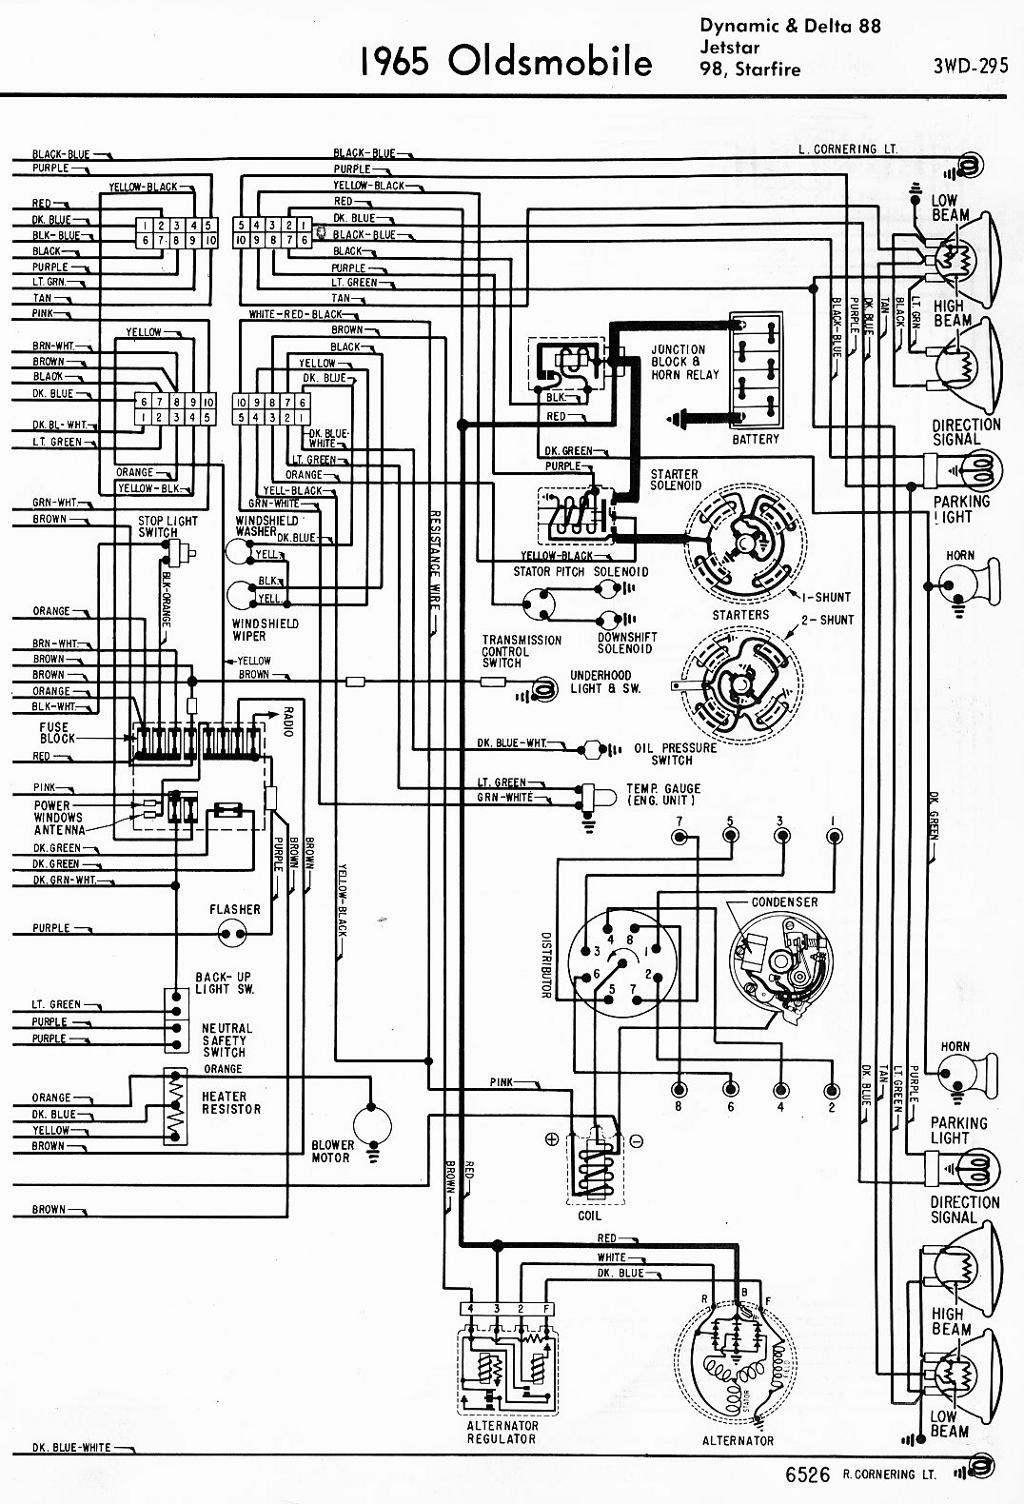 oldsmobile car manuals wiring diagrams pdf fault codes rh automotive manuals net Electrical Wiring Diagrams For Dummies Wiring Schematic Symbols